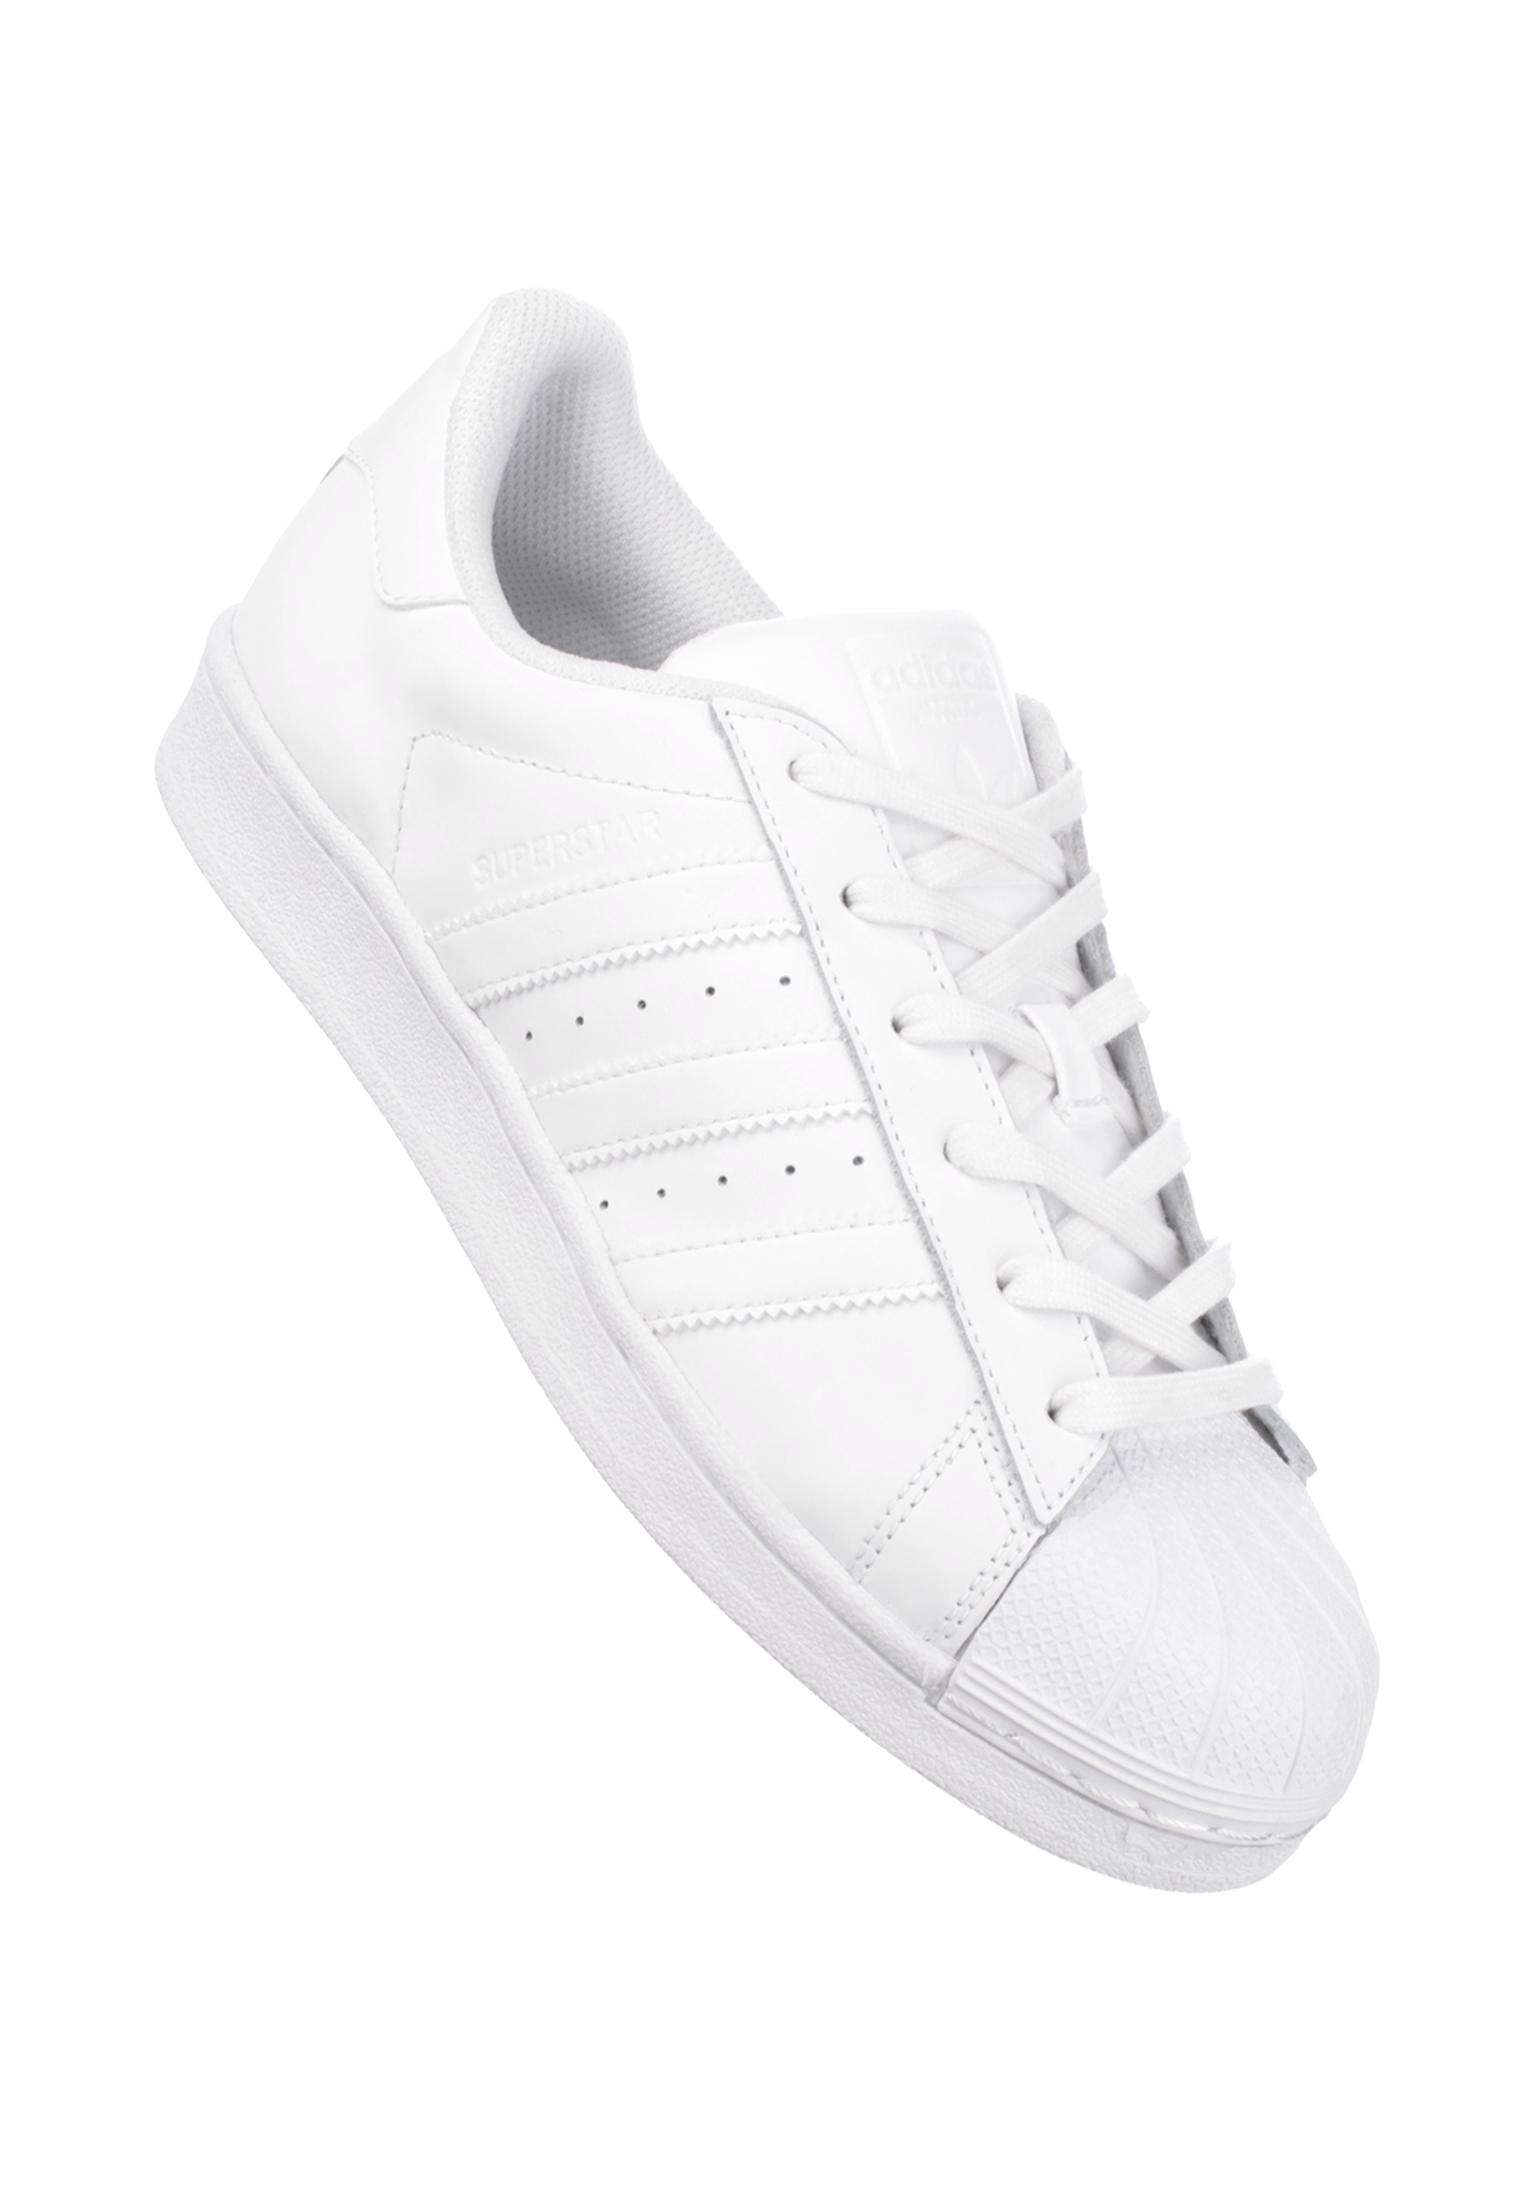 newest 689a4 4dce3 ... coupon code for superstar w adidas all shoes in white white for women  titus 6a786 38df0